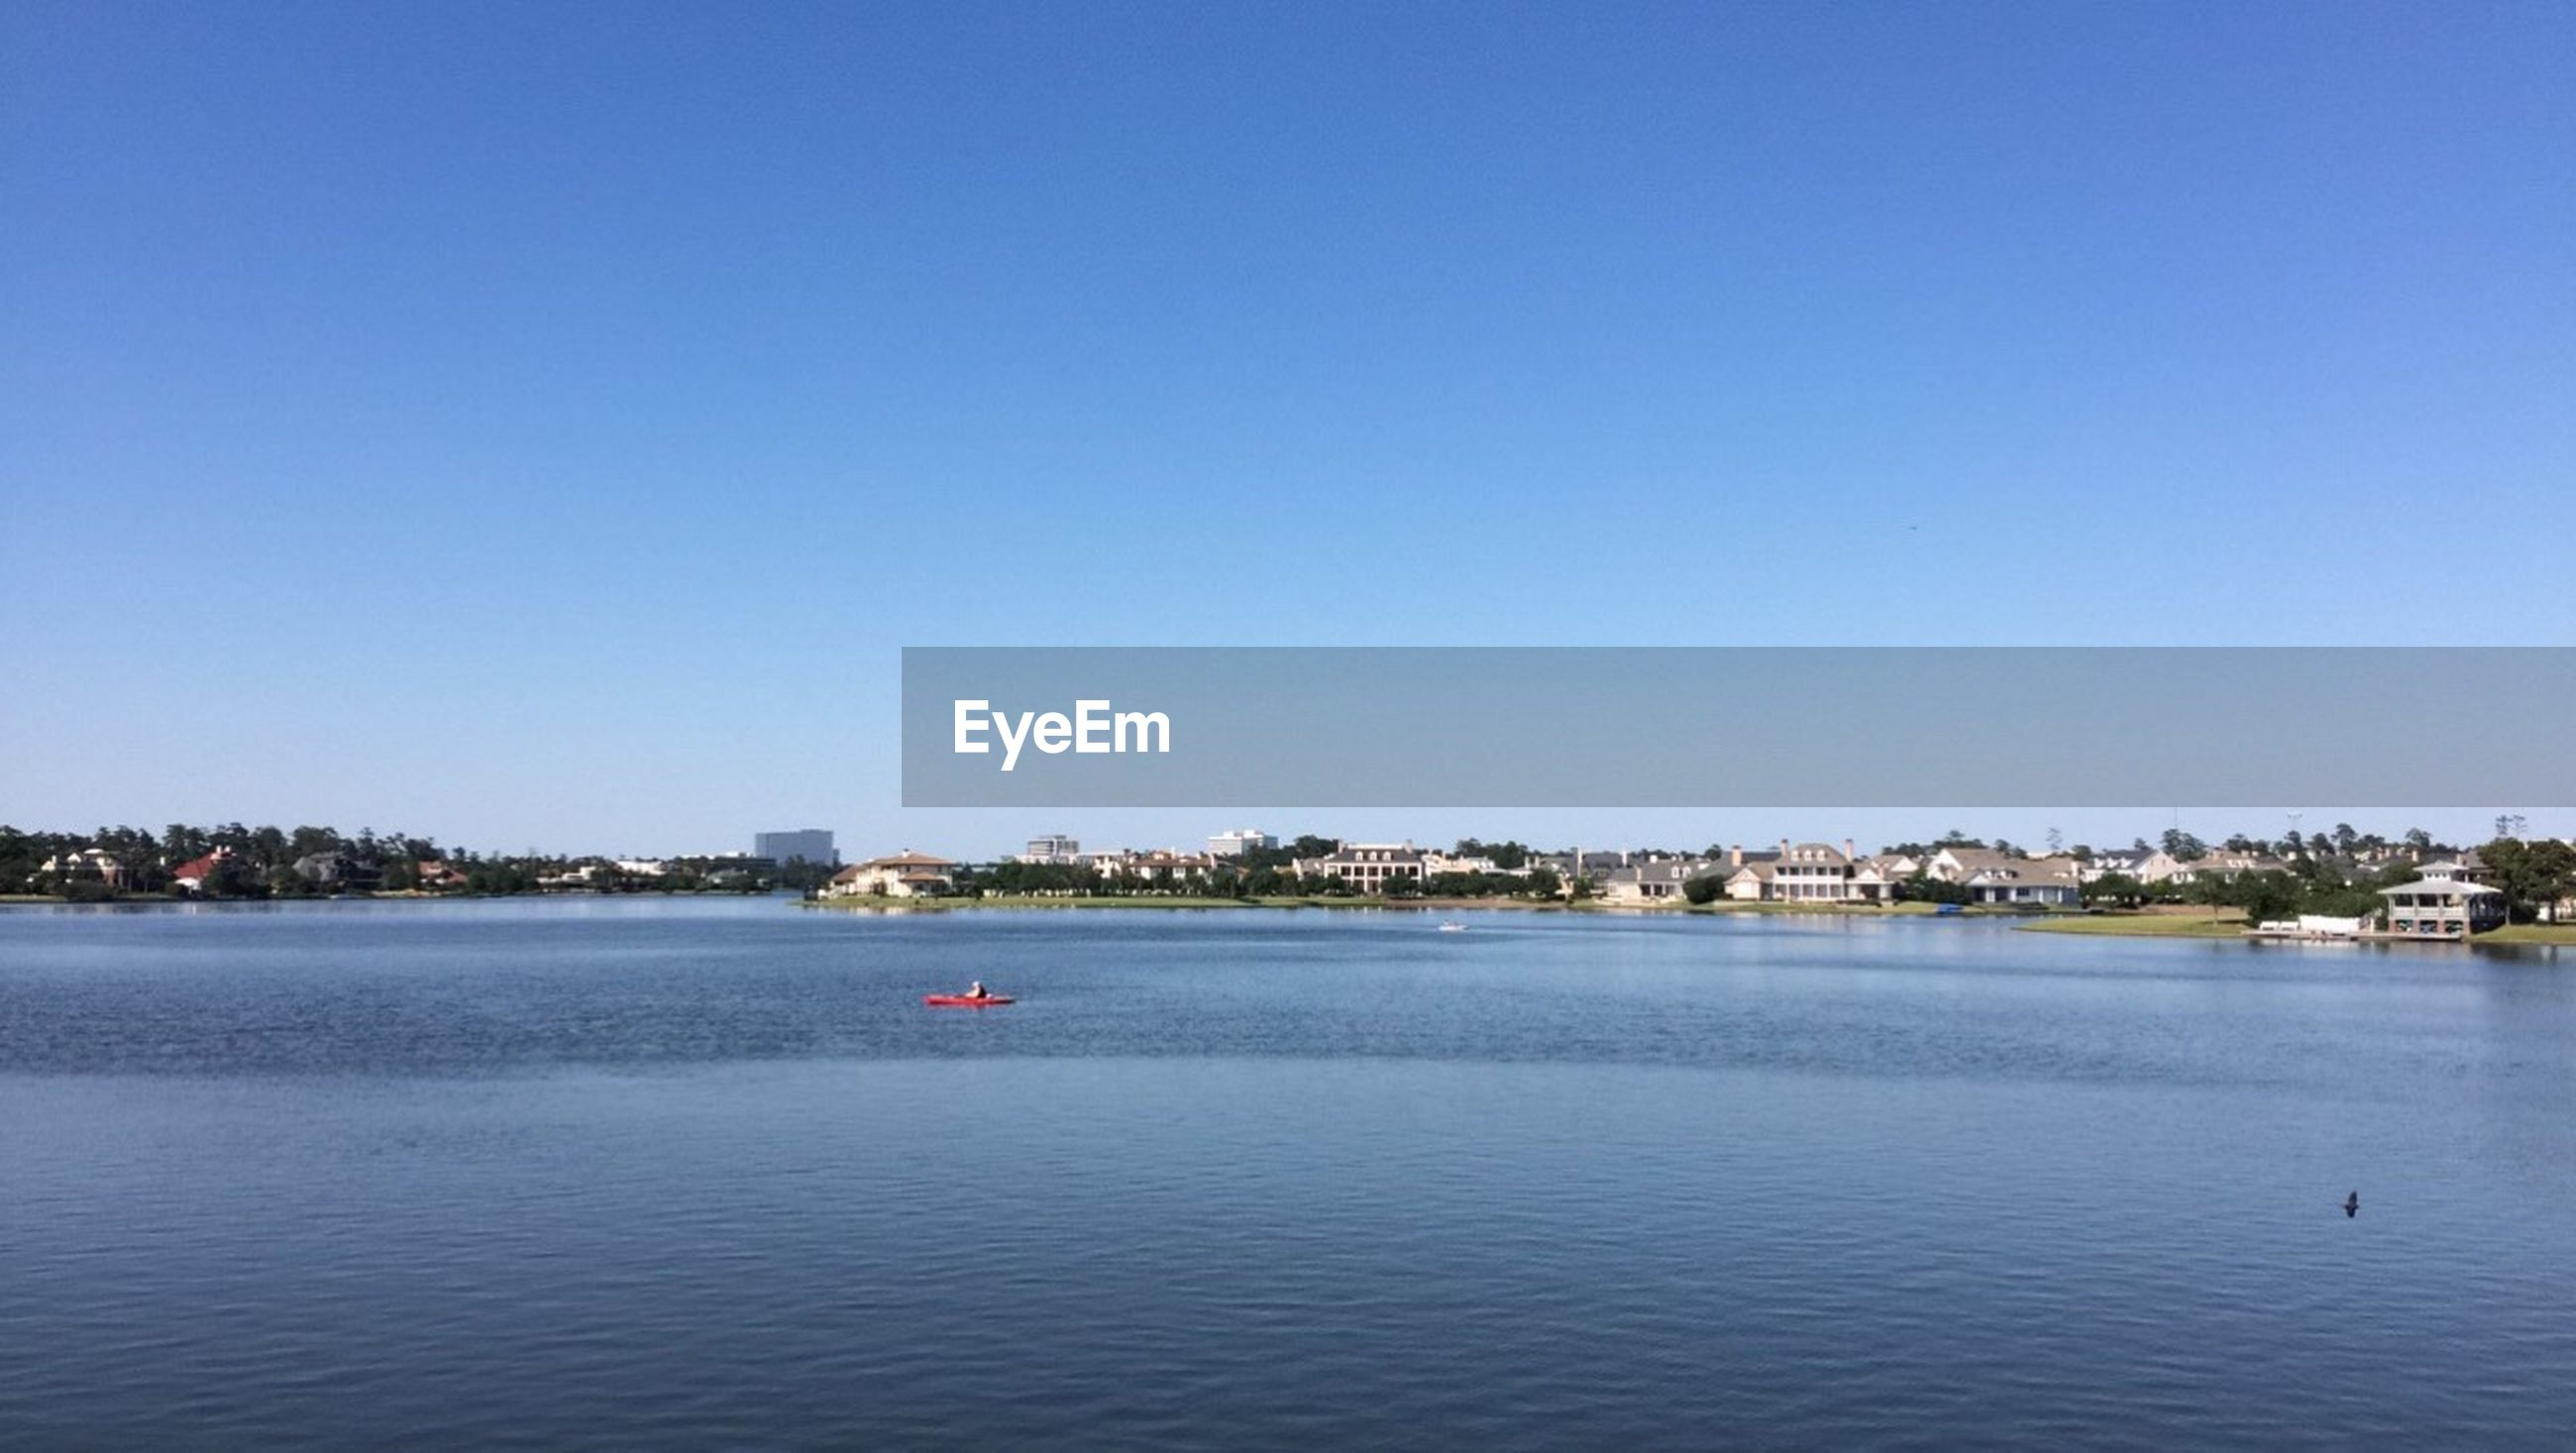 architecture, water, clear sky, building exterior, copy space, no people, blue, built structure, waterfront, day, outdoors, cityscape, nature, lake, view into land, scenics, tranquility, nautical vessel, city, sky, beauty in nature